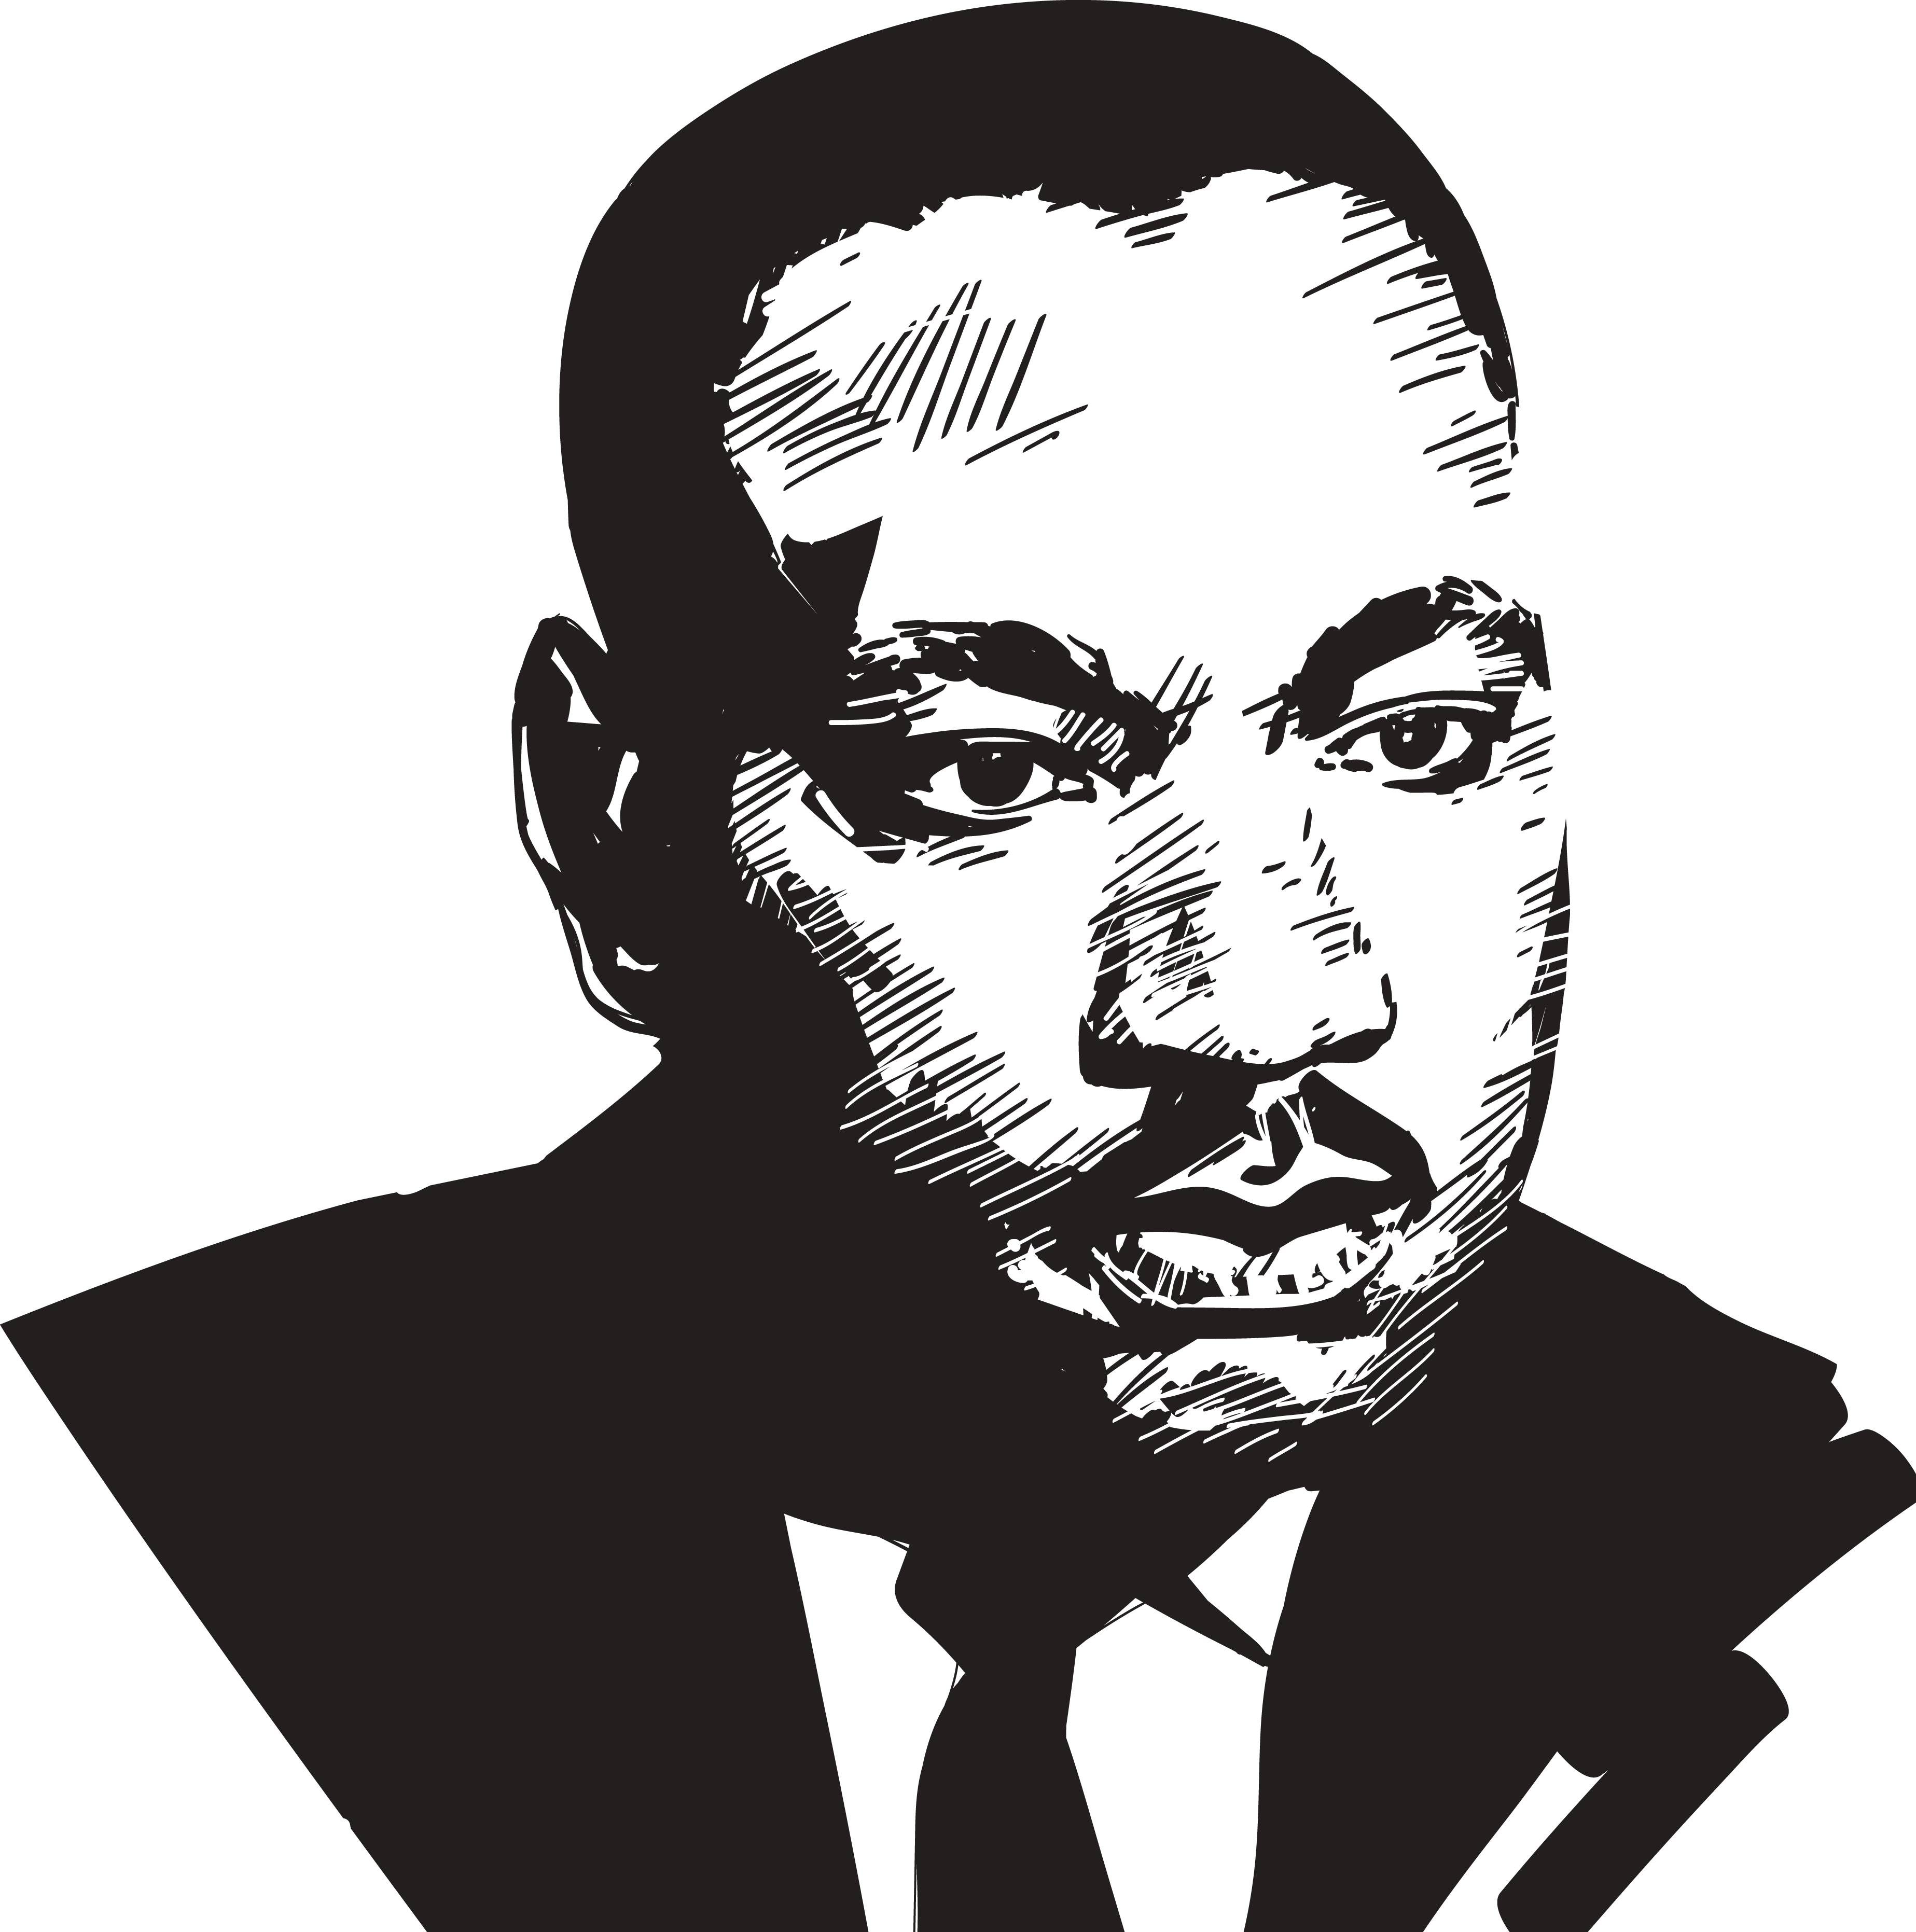 Martin Luther King Png Transparent ~ news word